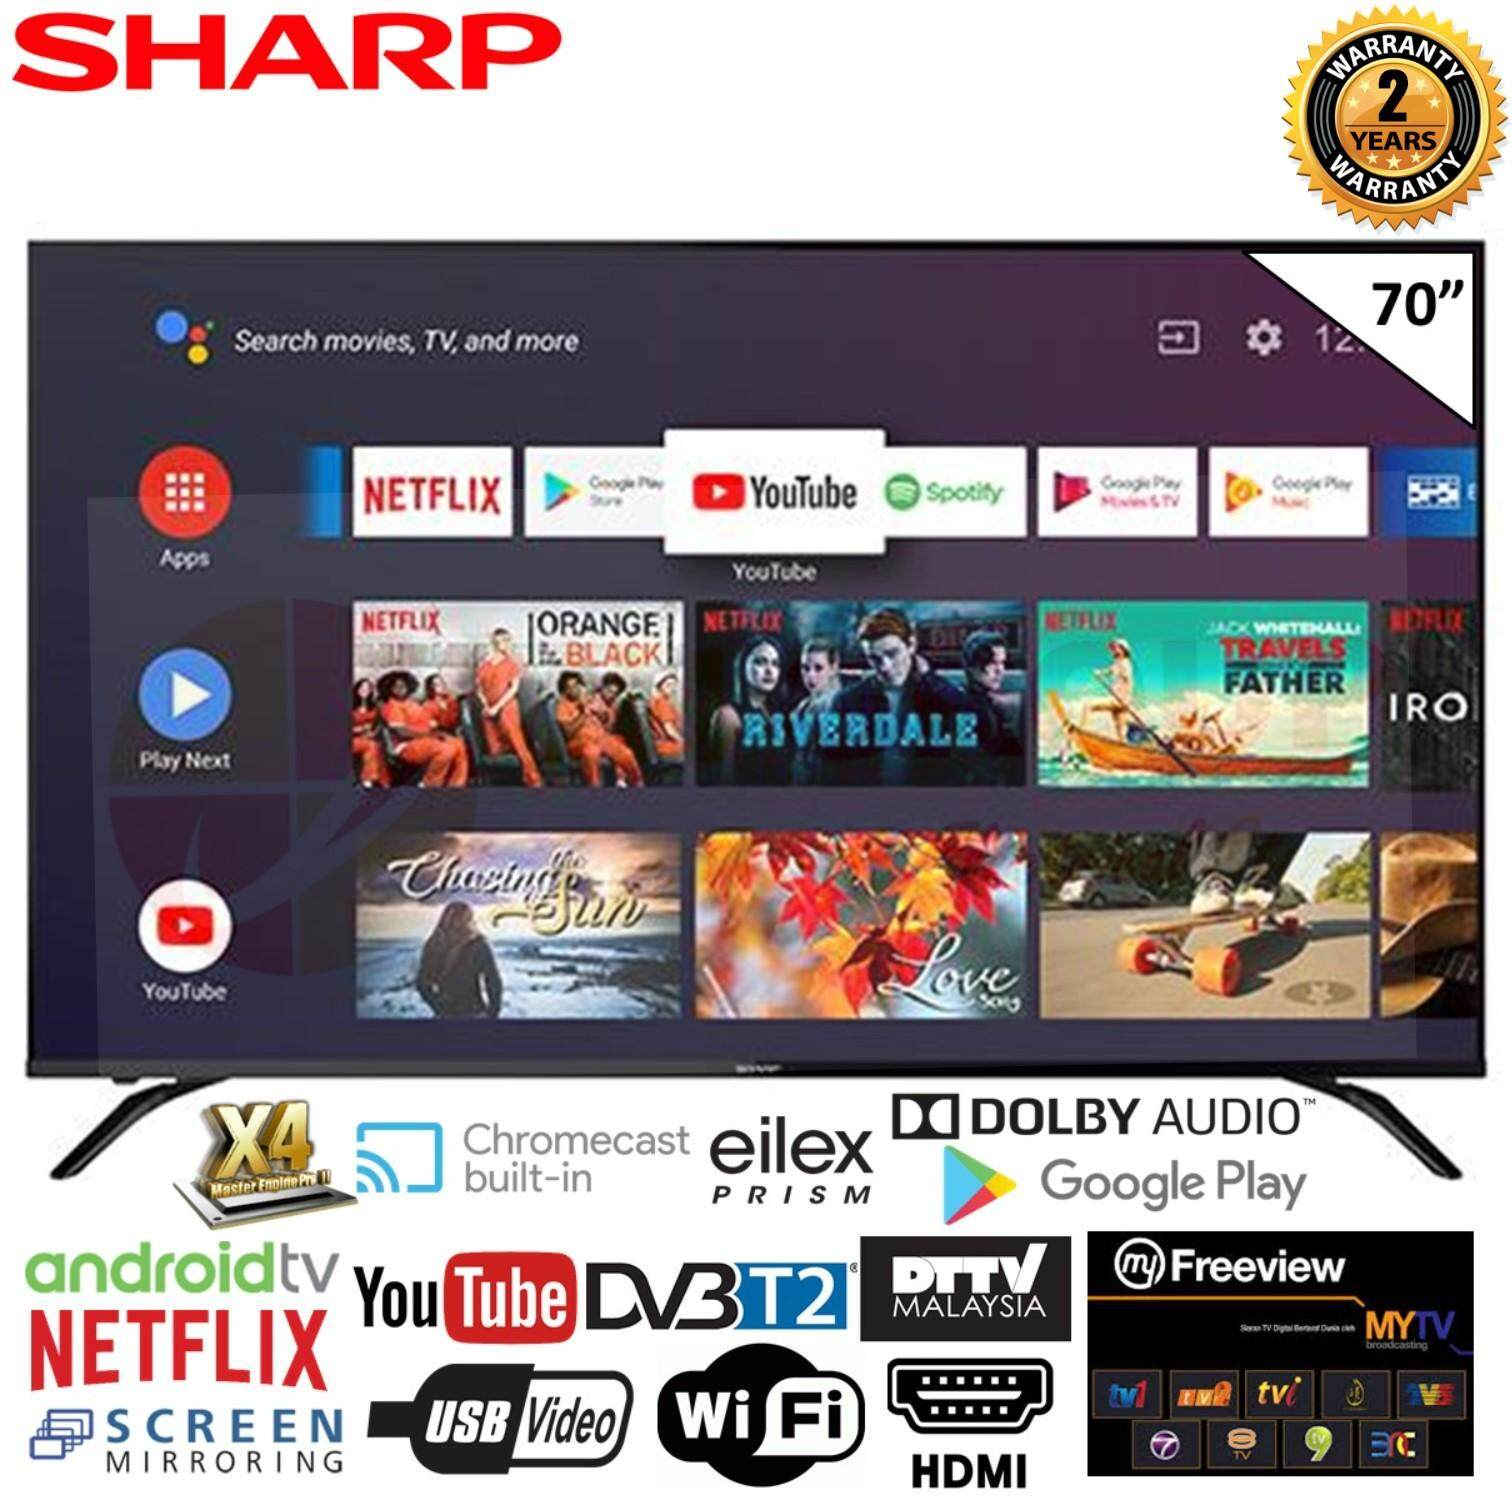 (AUTHORISED DEALER) SHARP 4TC70AL1X 70 4K UHD DVB-T2 ANDRIOD TV DTTV IDTV MYTV MYFREEVIEW SUPPORTED